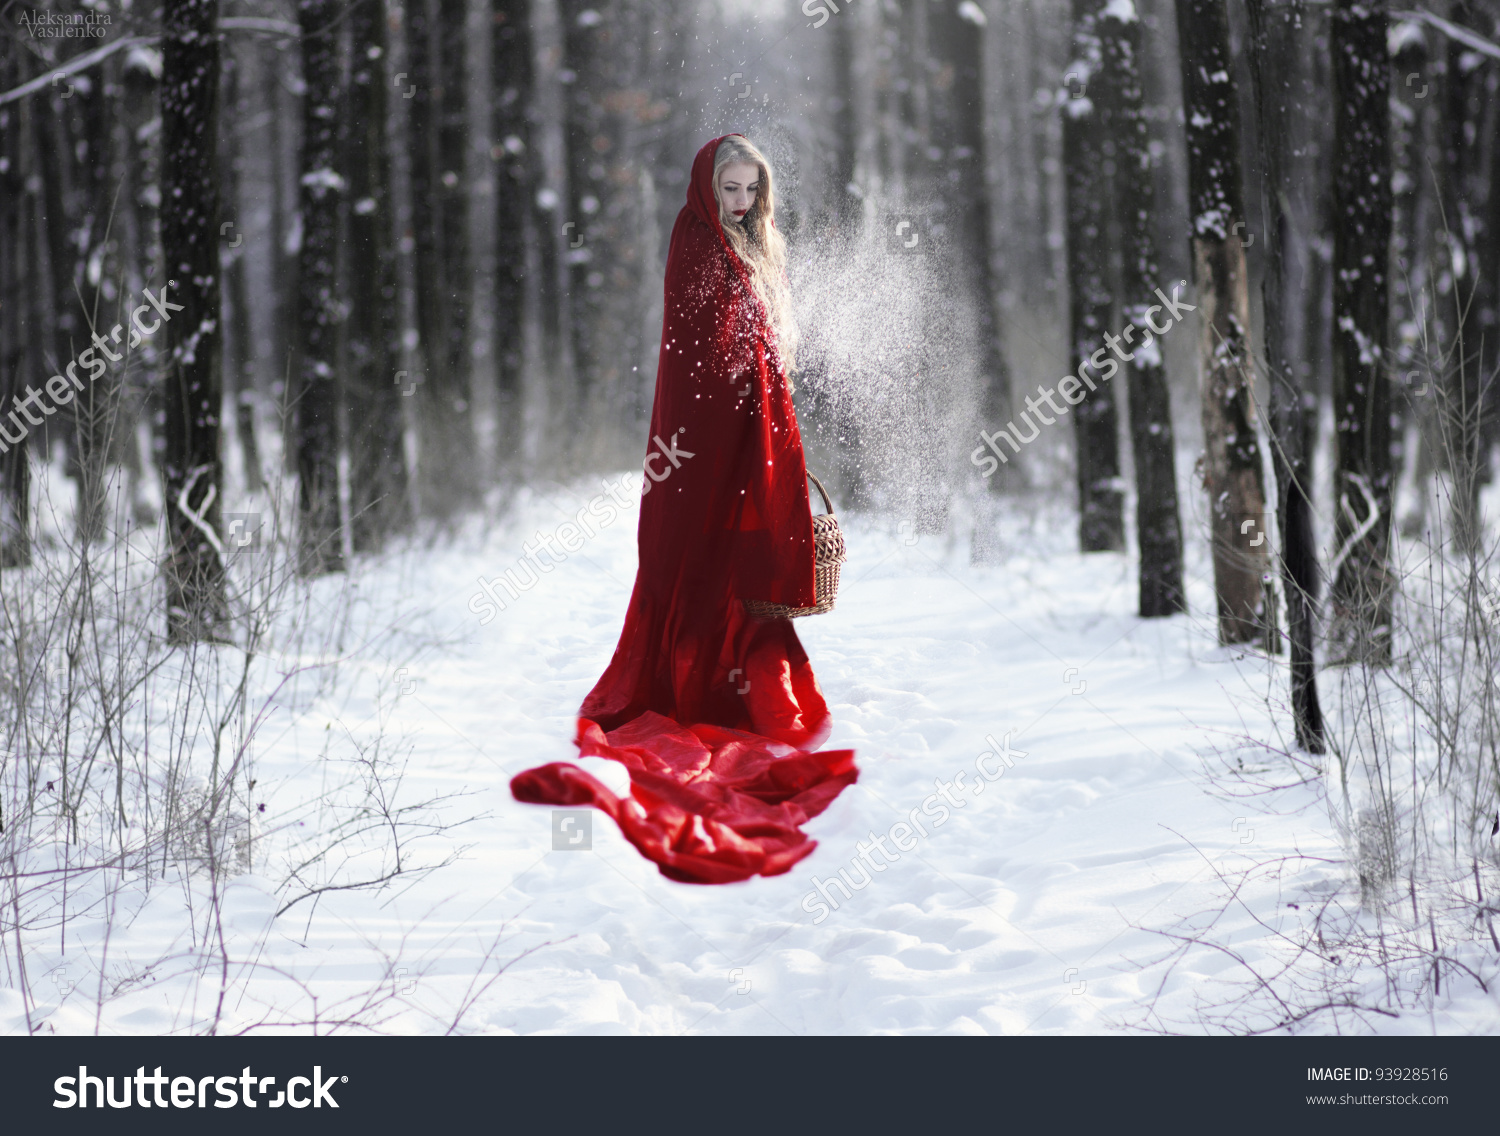 Red Riding Hood Backgrounds, Compatible - PC, Mobile, Gadgets  1500x1136 px